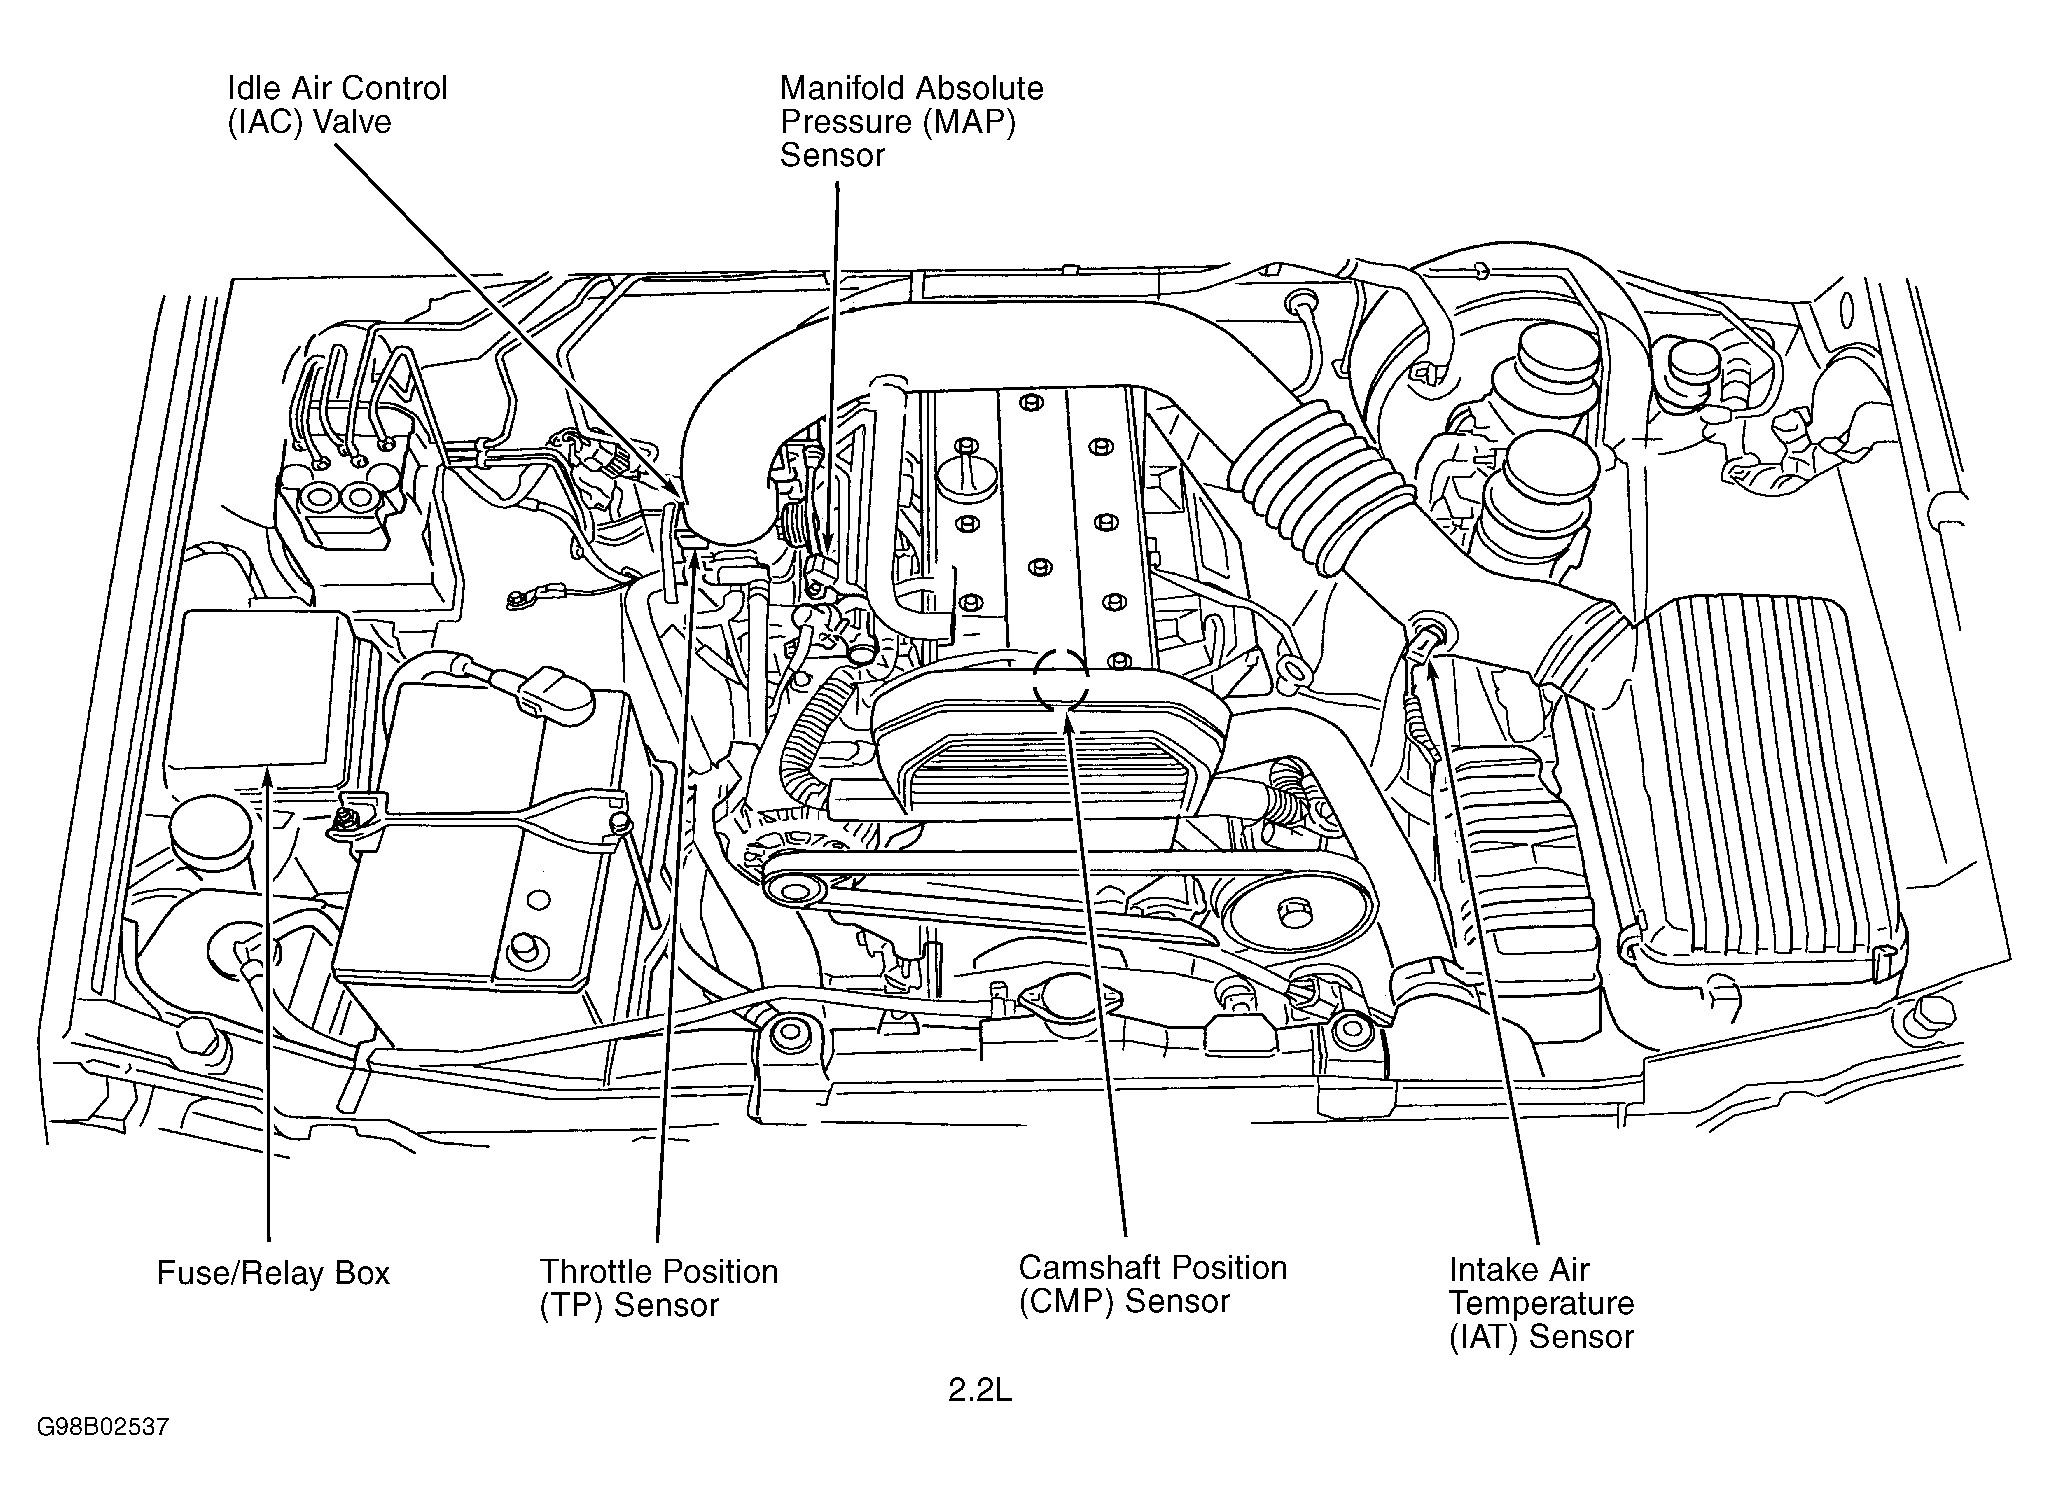 Isuzu Rodeo 2001 Yahoo Image Search Results Diagram Image Search Image